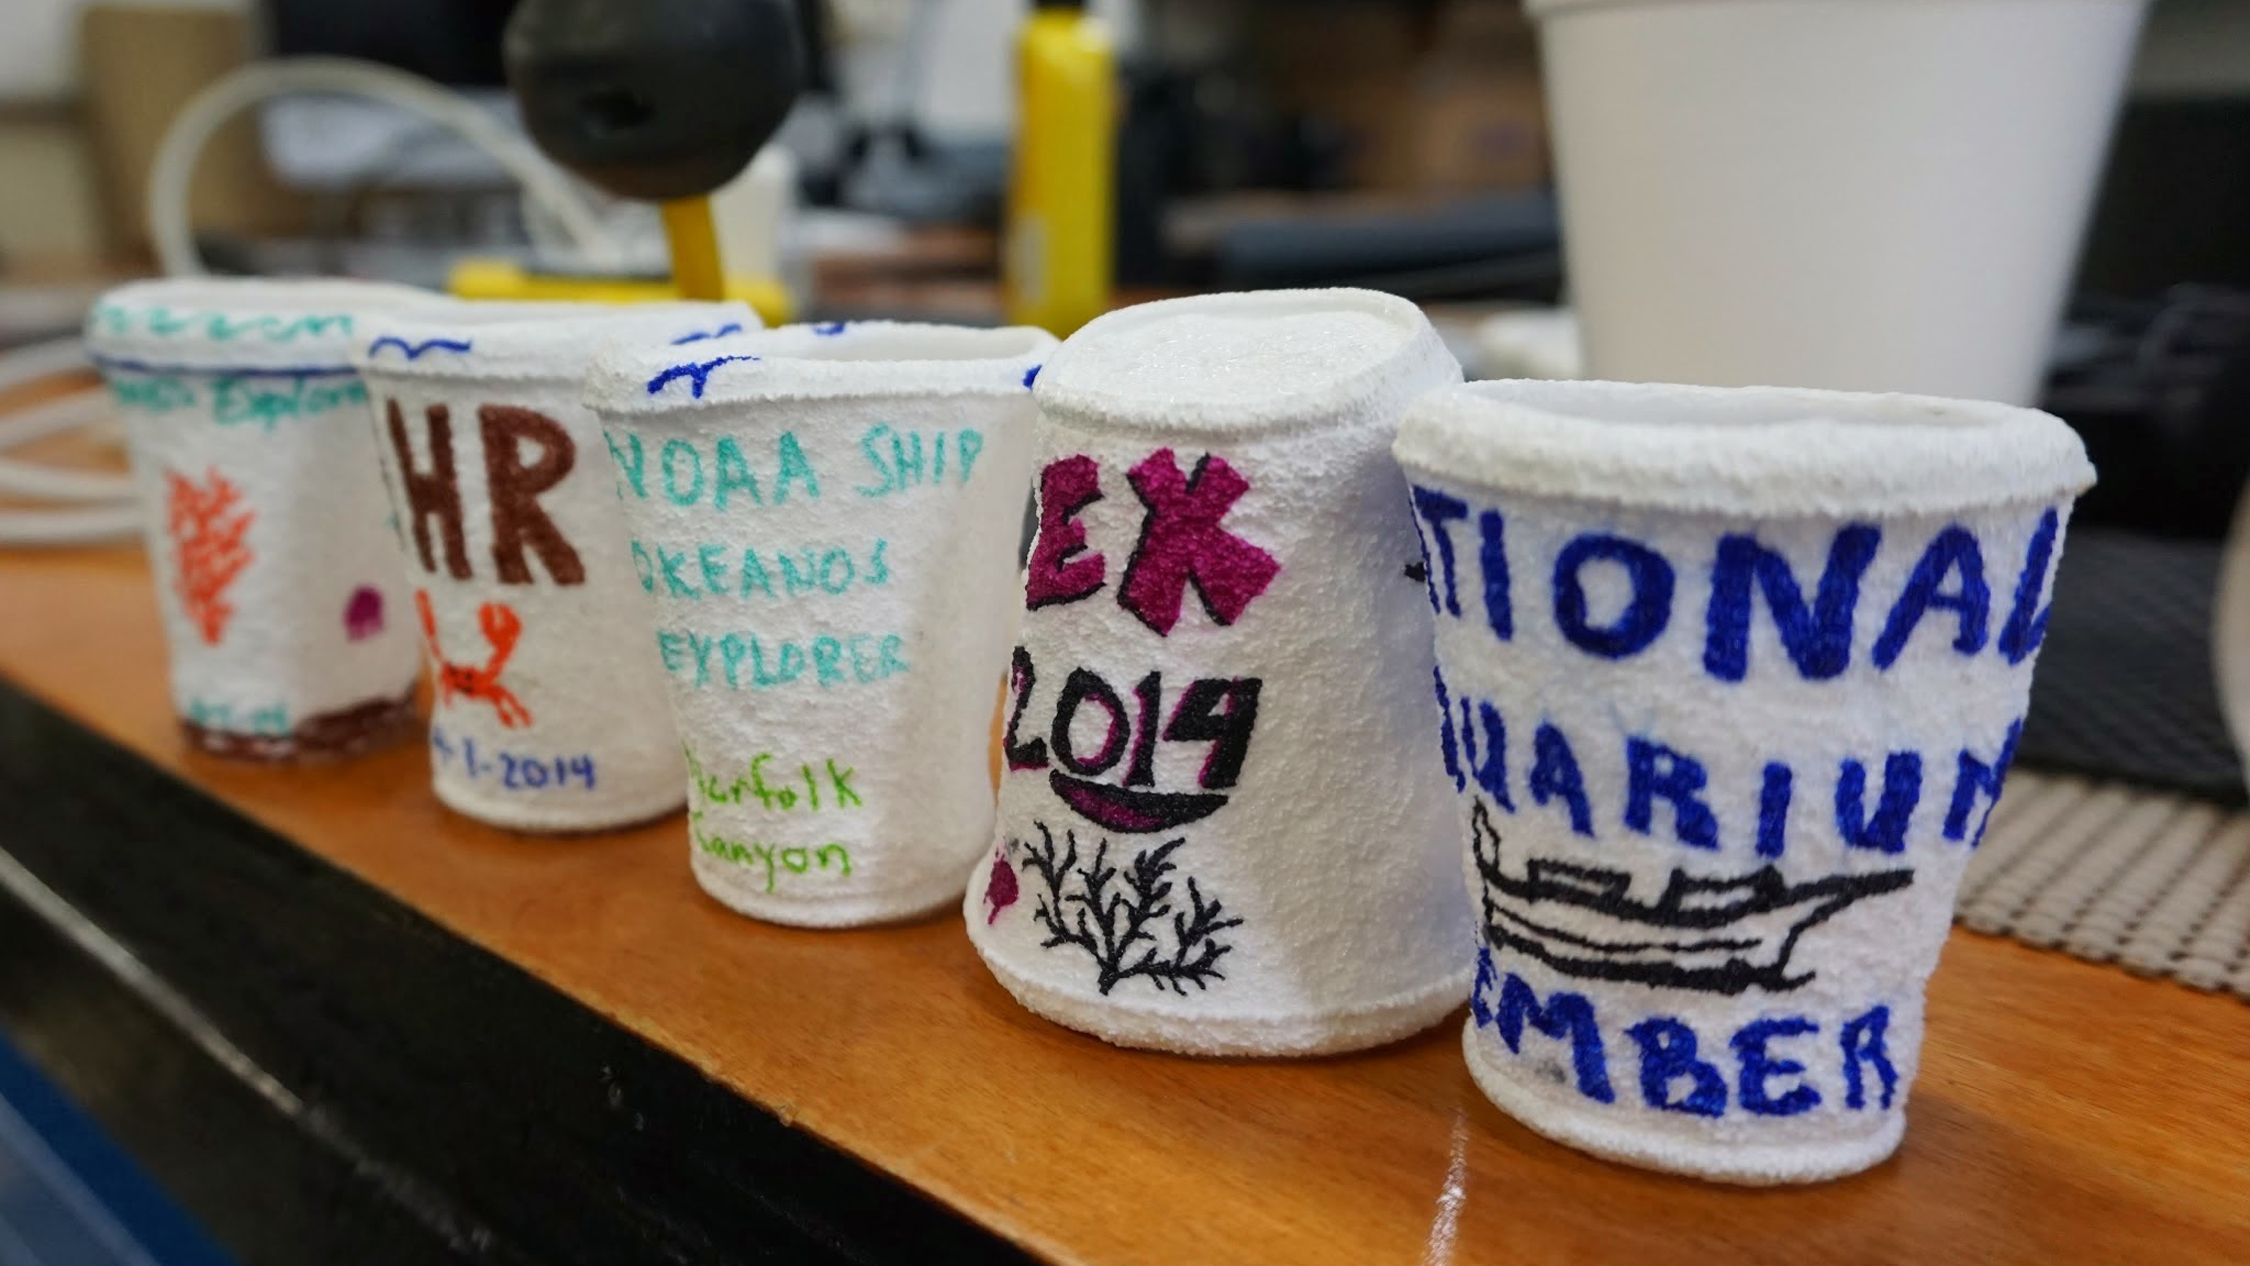 A rite of passage: Each Okeanos guest drew on a plastic foam cup. After the cups were submerged at 2,200 feet, the water pressure shrank them to one-third of their original size.